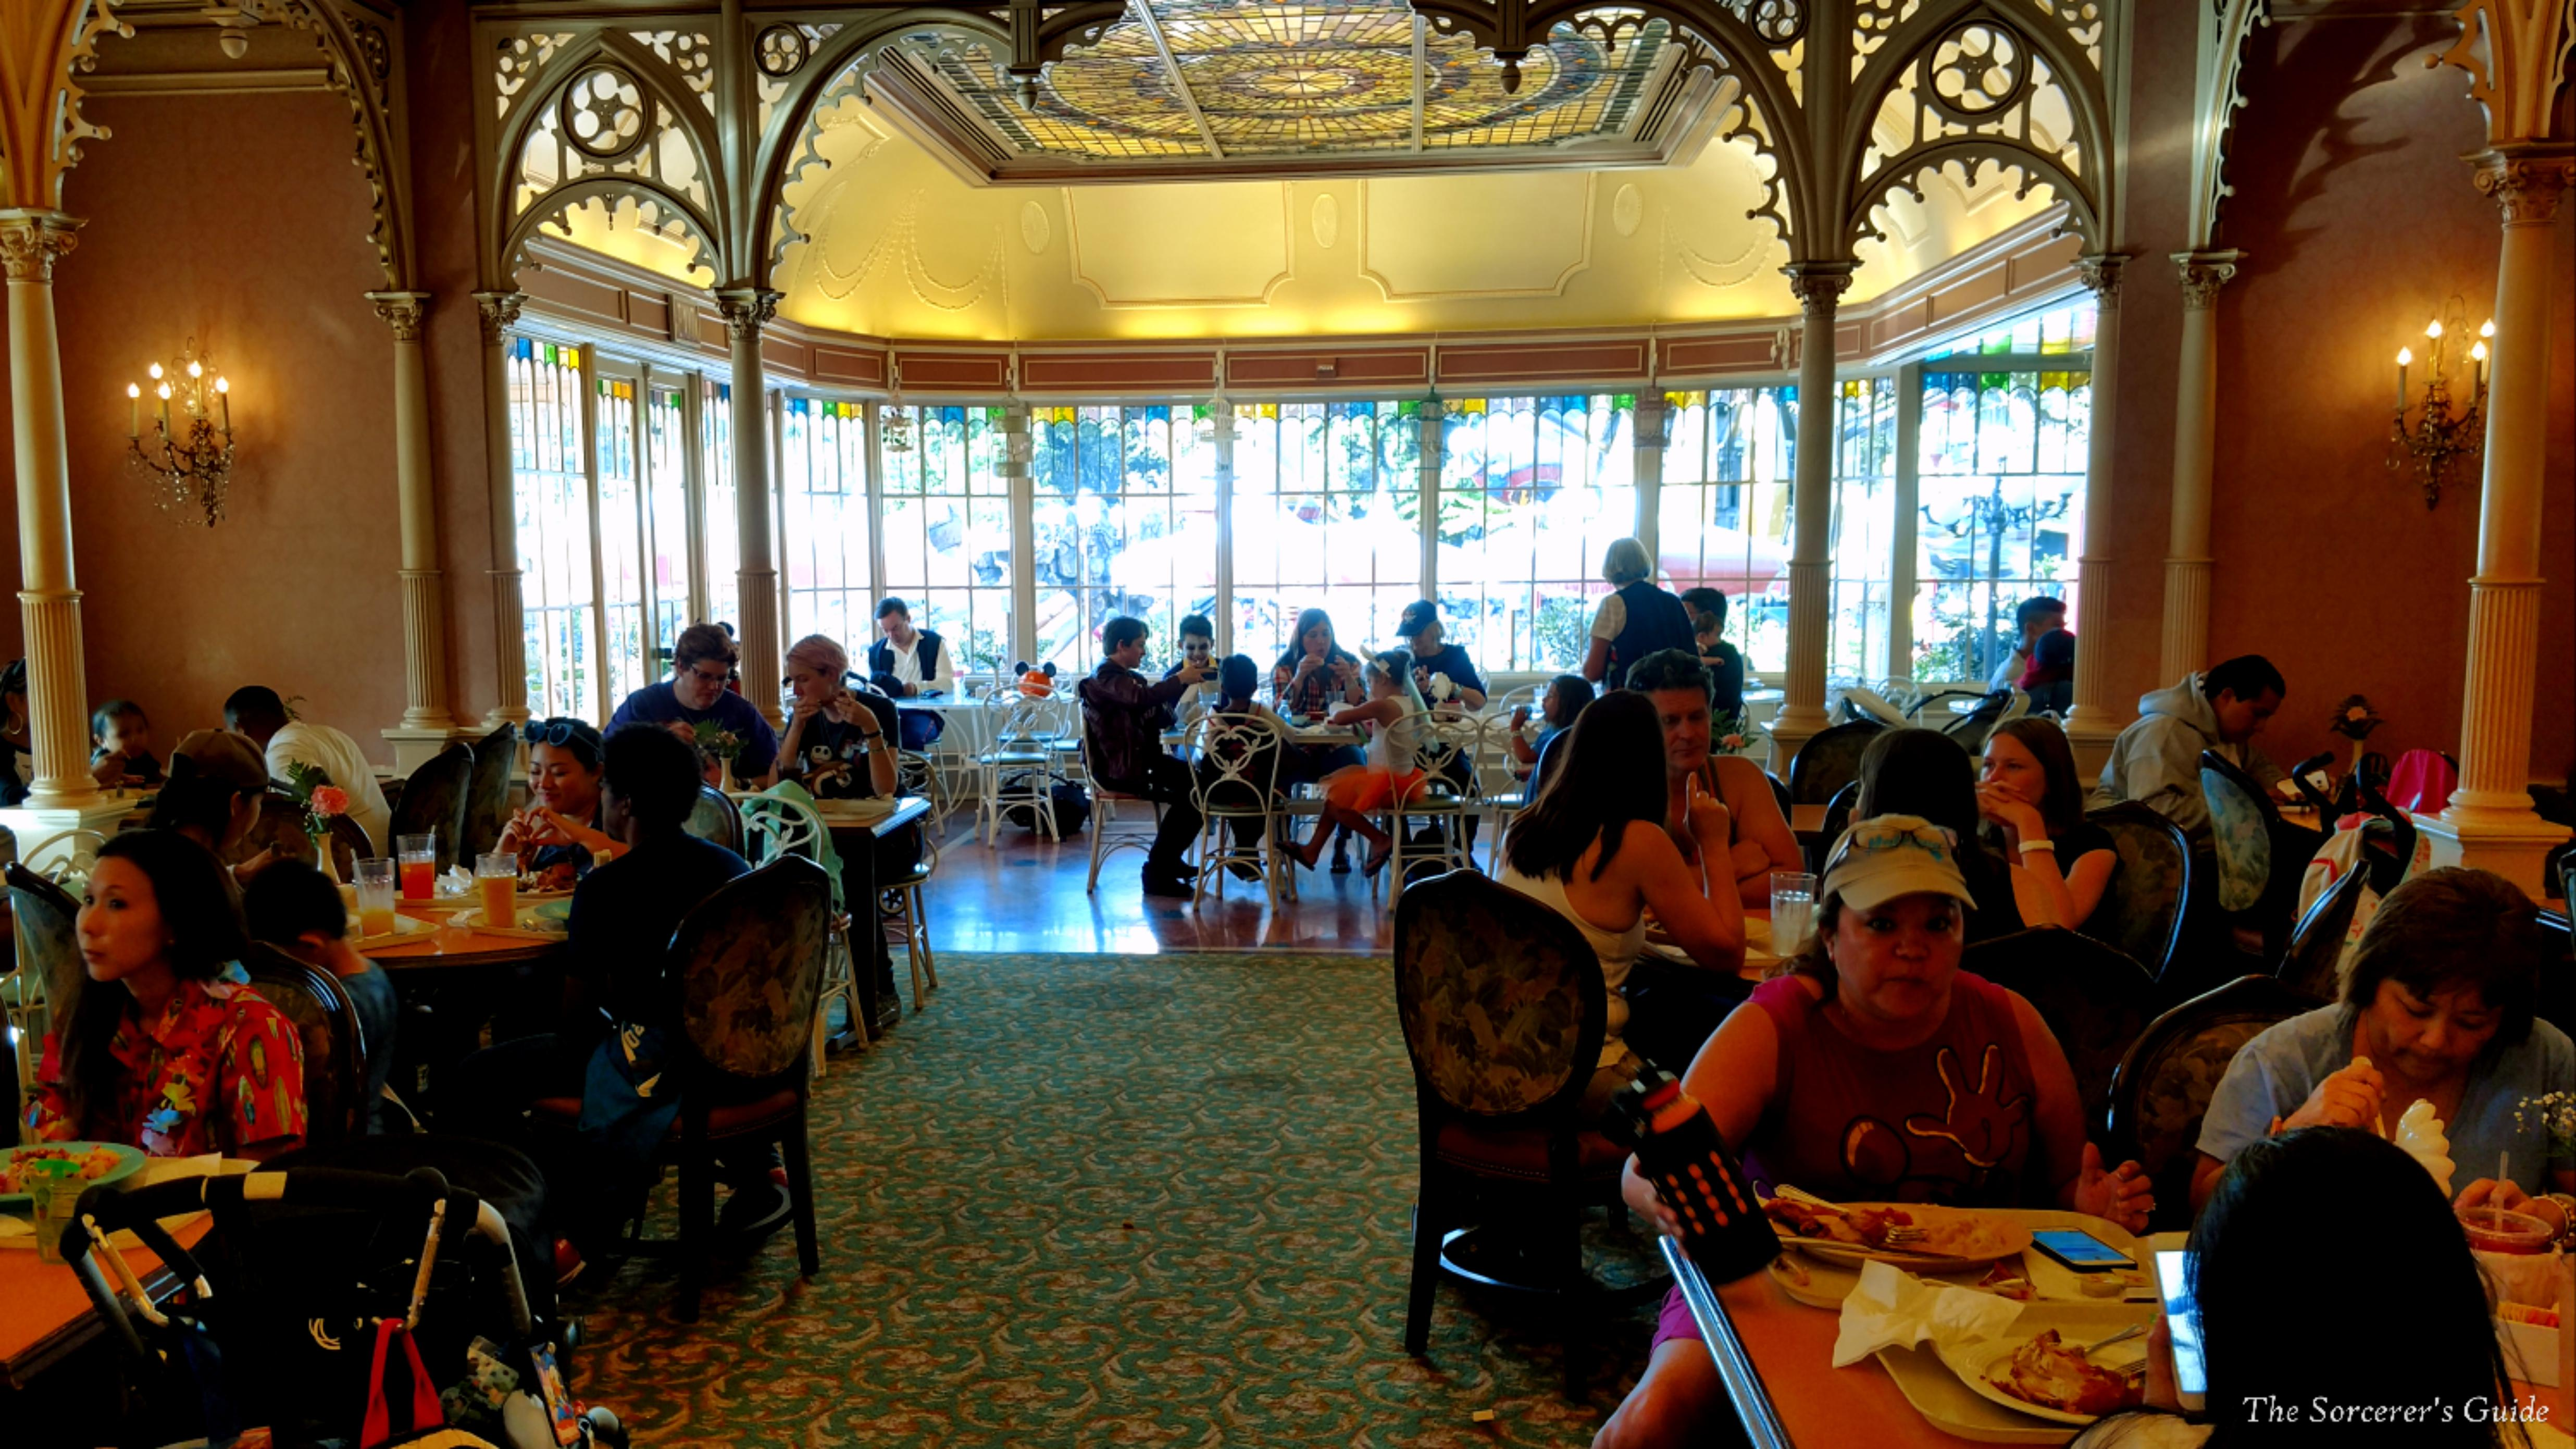 Indoor seating at Plaza Inn